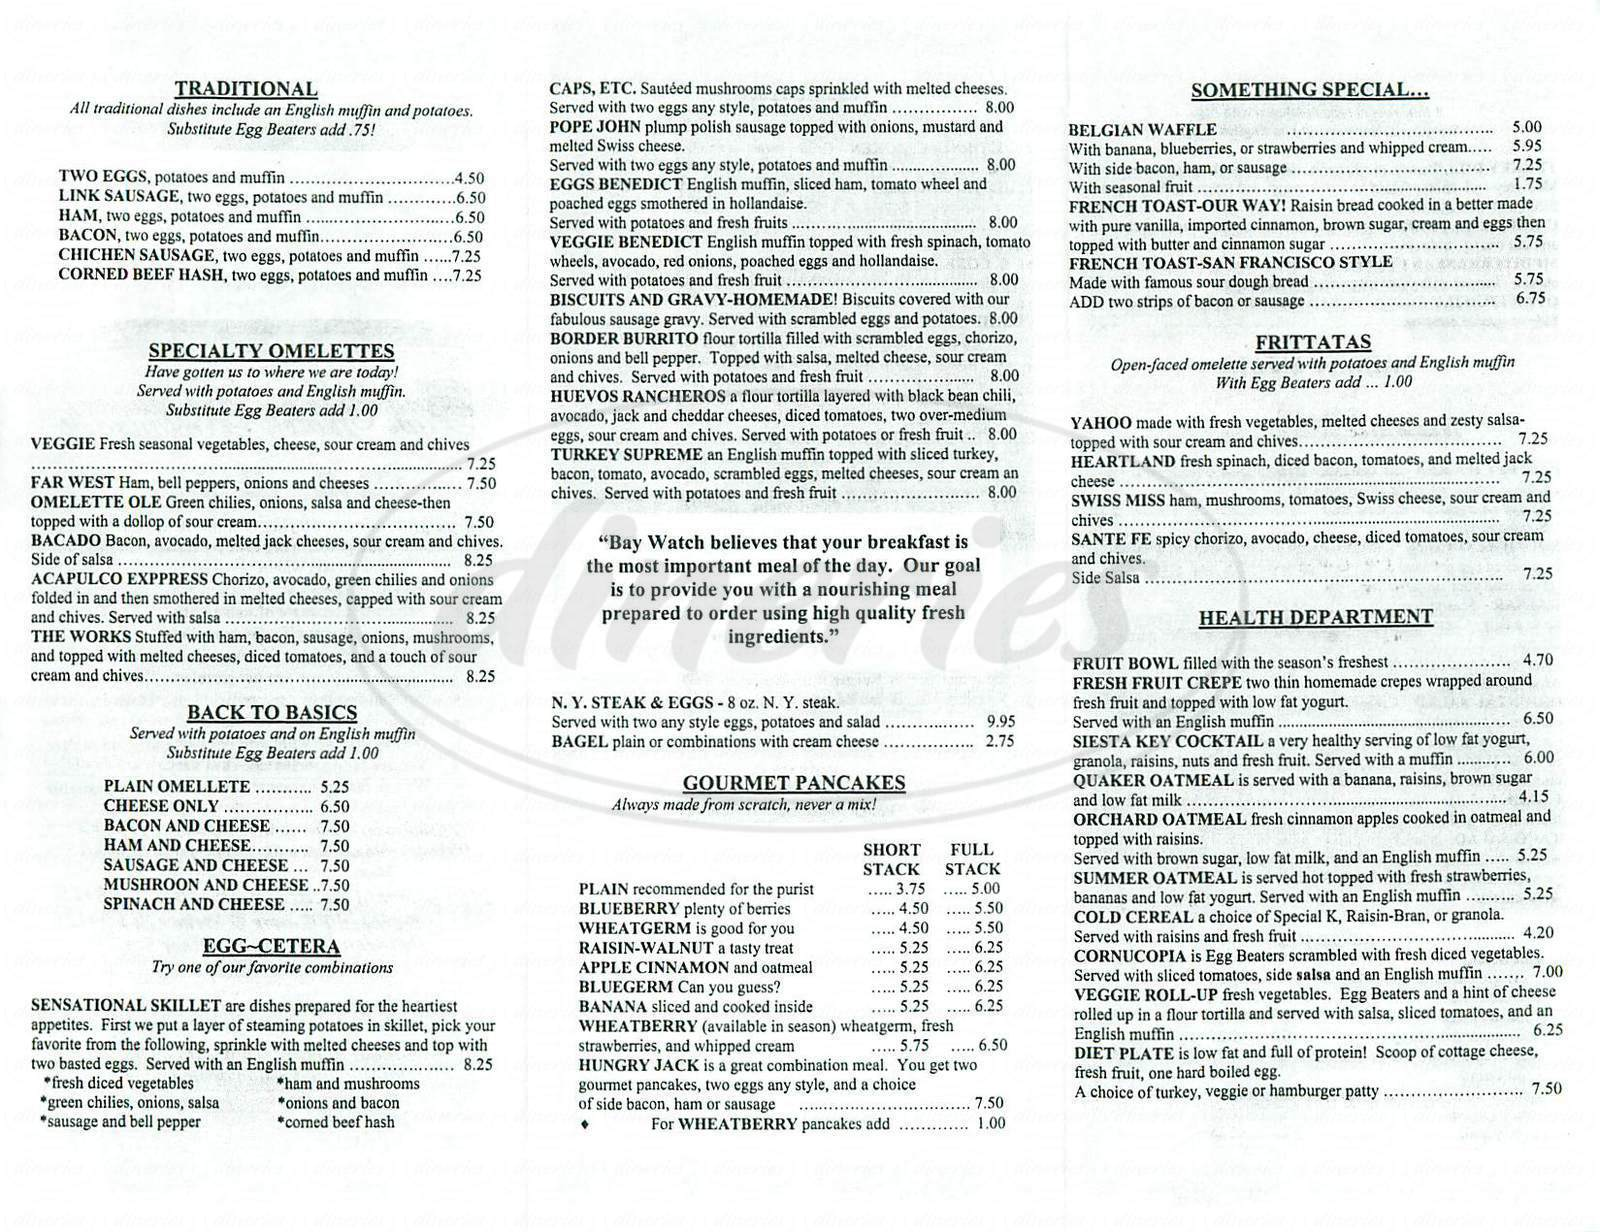 menu for Bay Watch